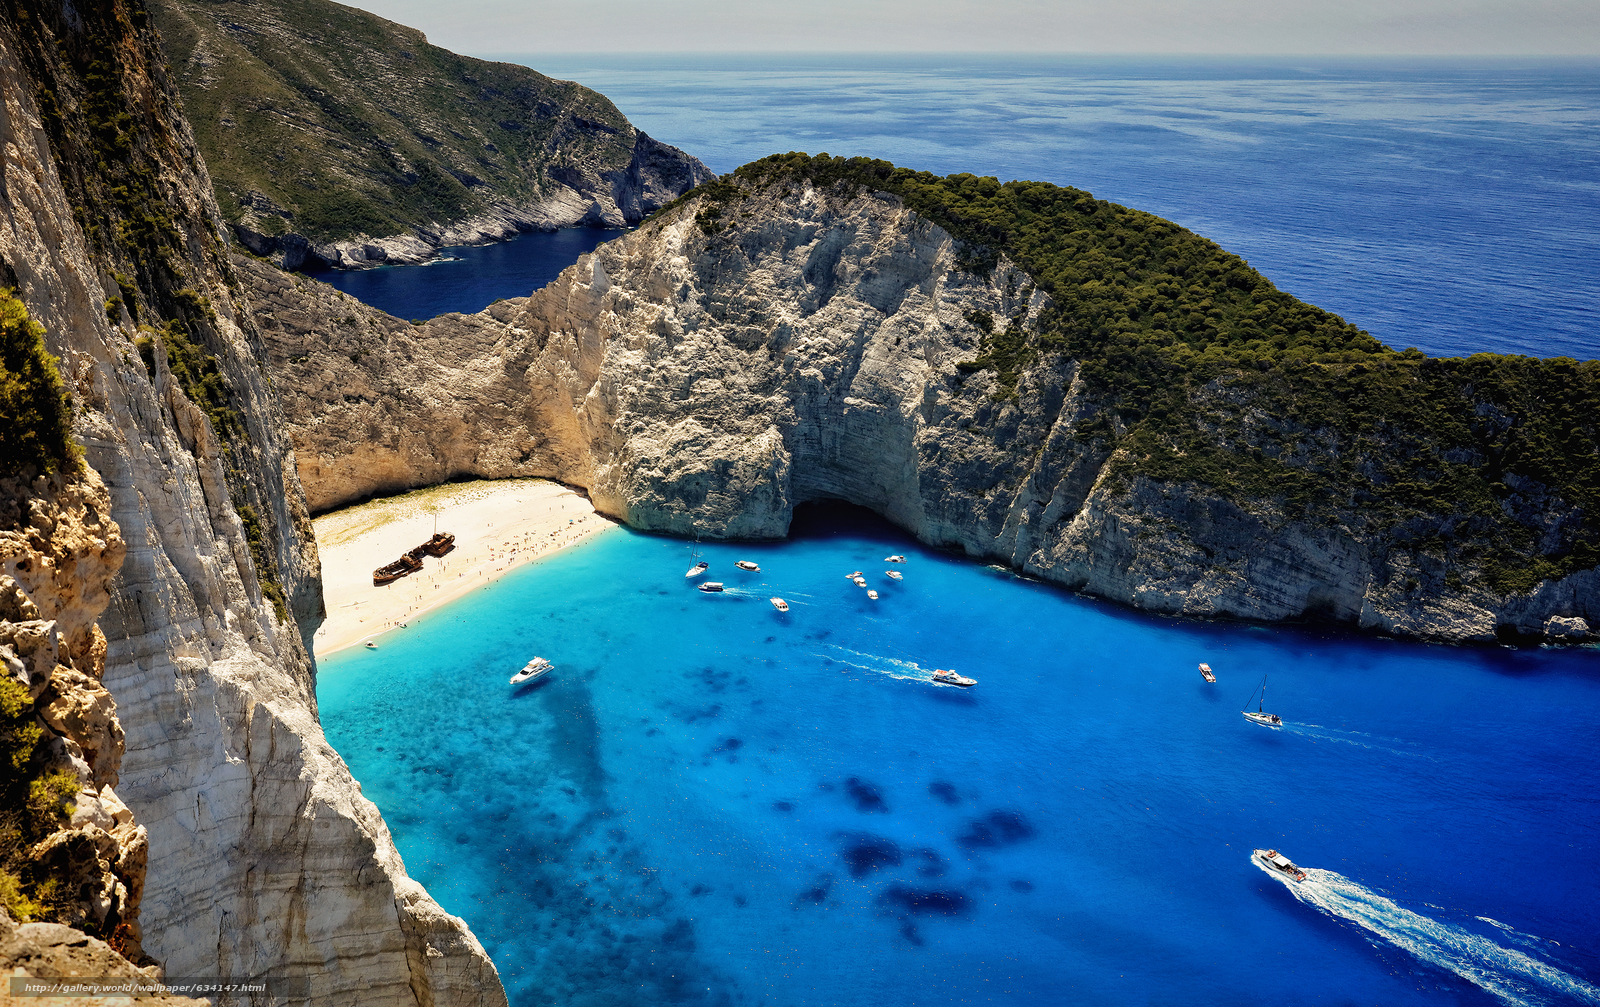 Download Wallpaper Shipwreck Navagio Beach Zakynthos Free Desktop In The Resolution 2975x1872 Picture No634147